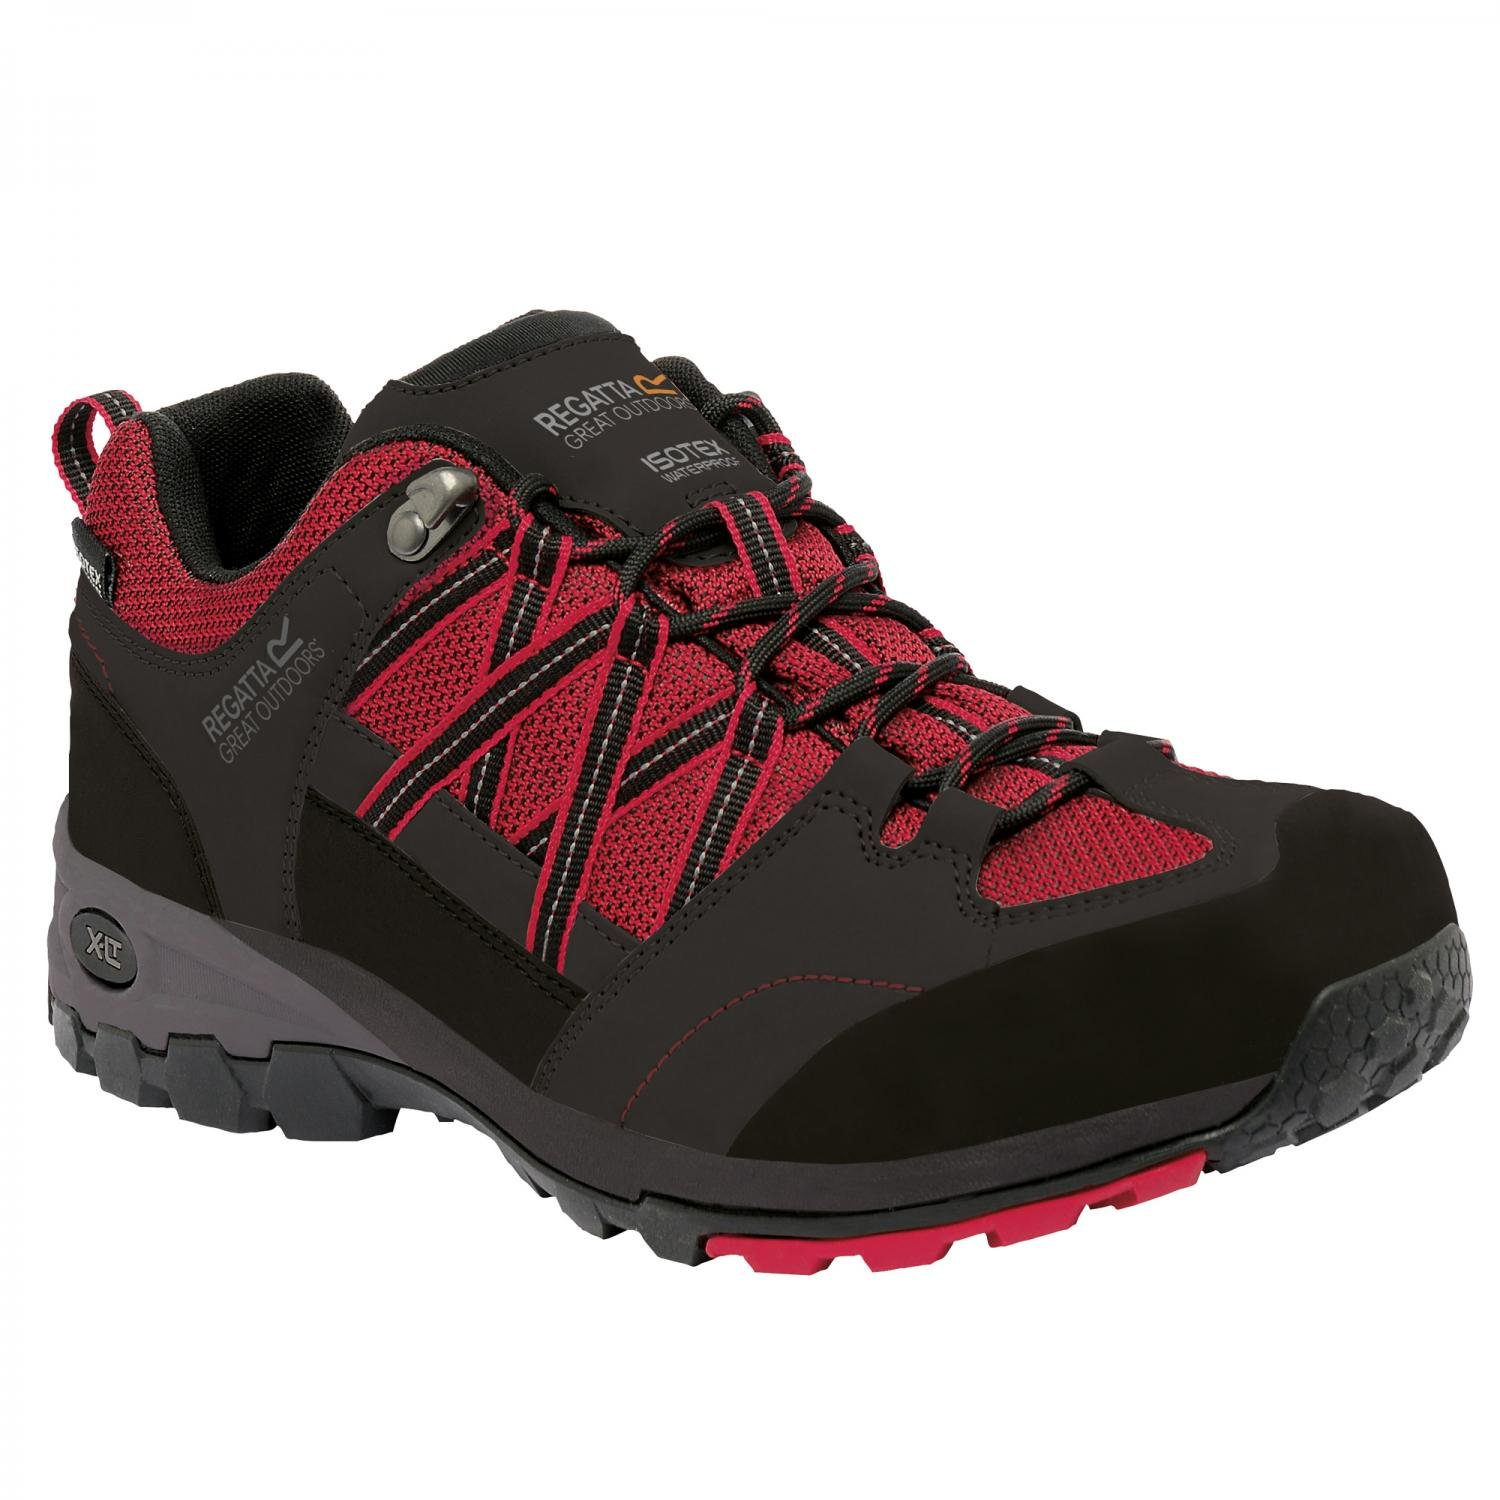 Regatta Great Outdoors Mens Samaris Low Contrast Lace Up Hiking Boots